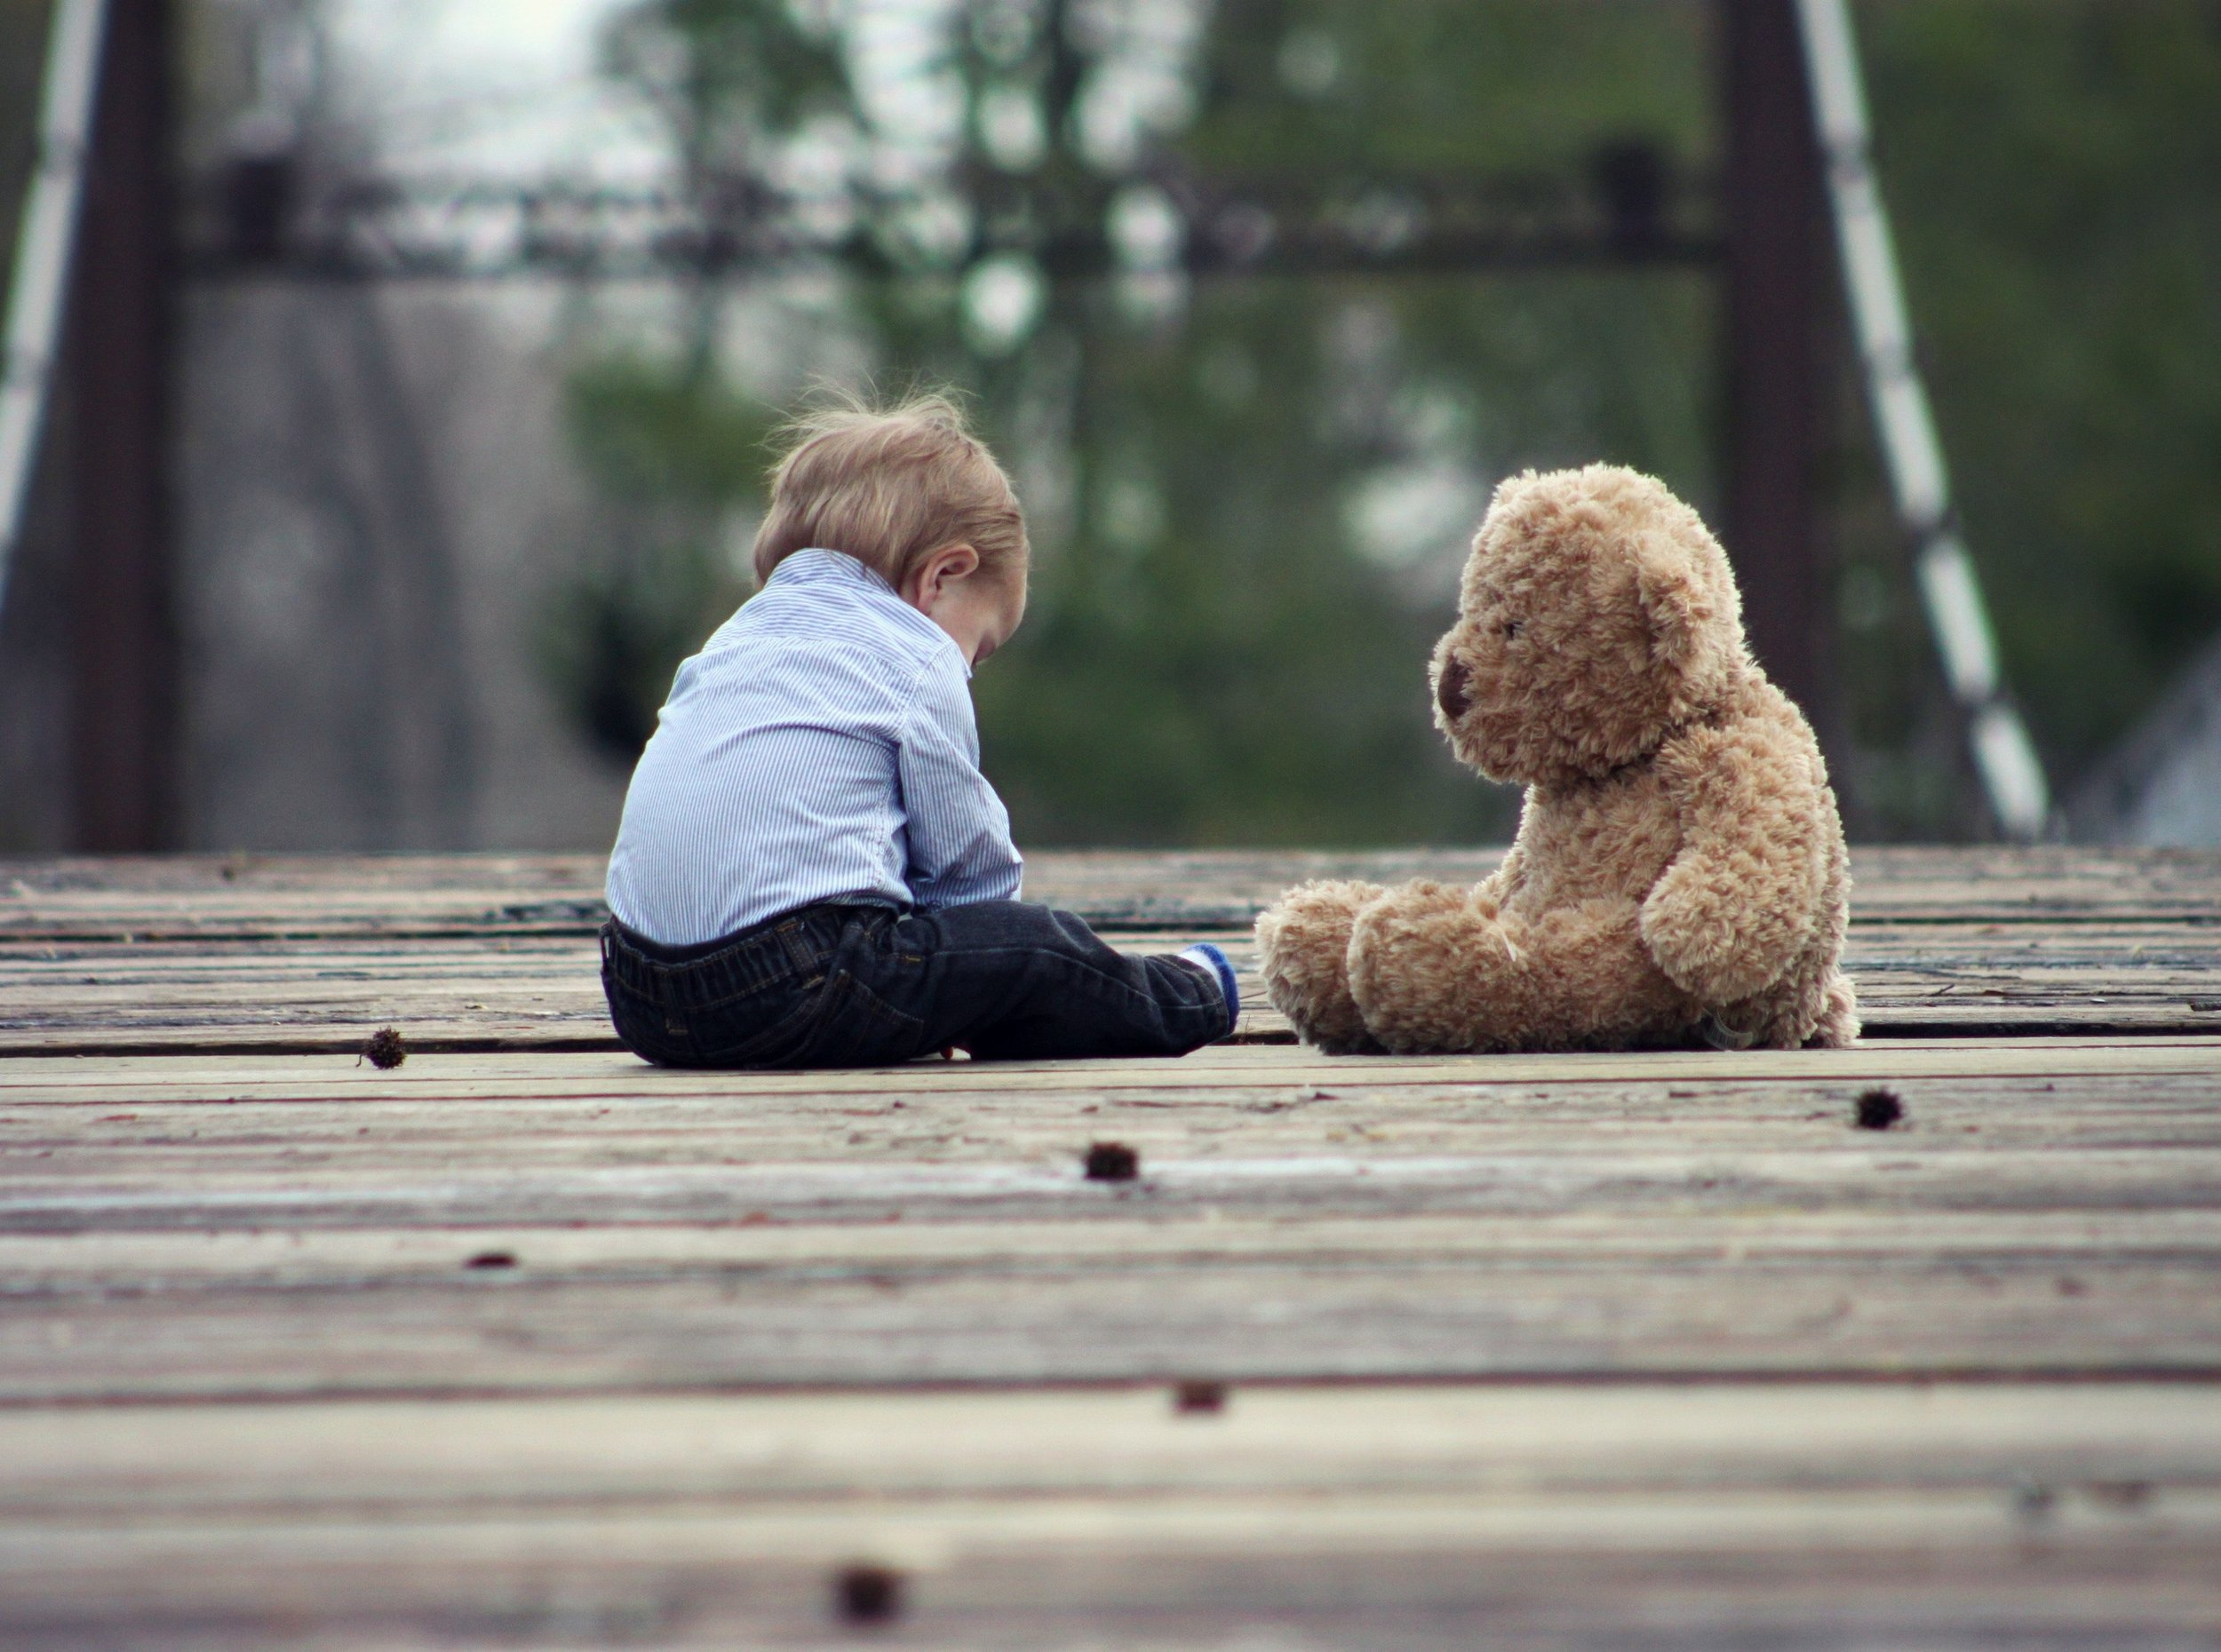 Baby and Bear Picture.jpg